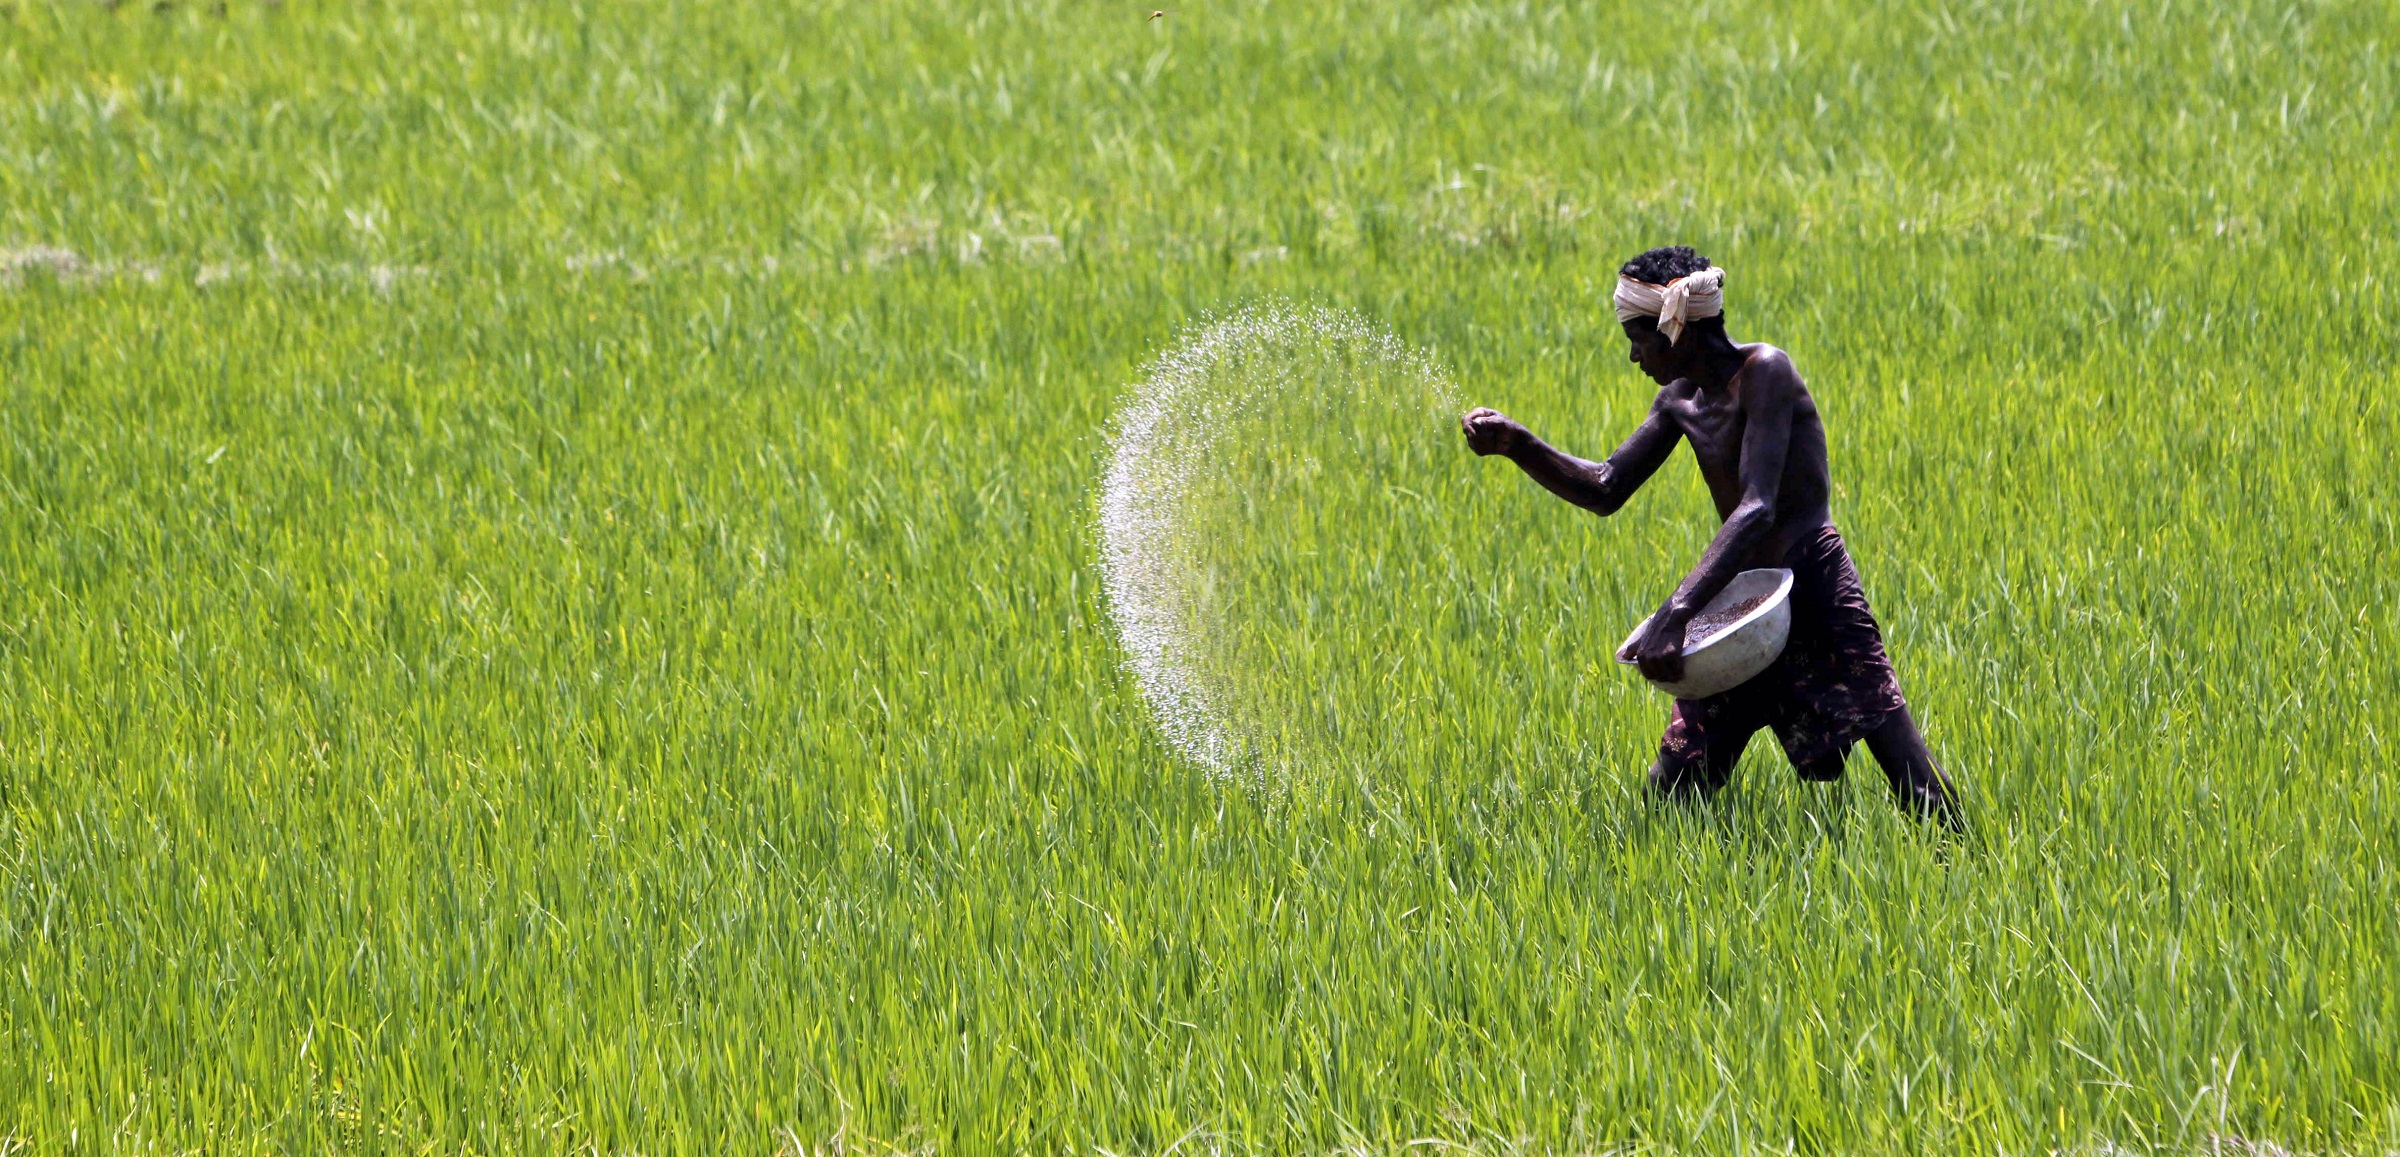 A village farmer sprinkles fertilizer in a paddy field on the outskirts of Bhubaneswar, India, Saturday, Aug. 24, 2013. The Indian economy, Asia's third largest, grew 5 percent in the financial year ended March, its slowest in a decade and well off the 8 percent pace it had averaged over those 10 years. (AP Photo/Biswaranjan Rout)